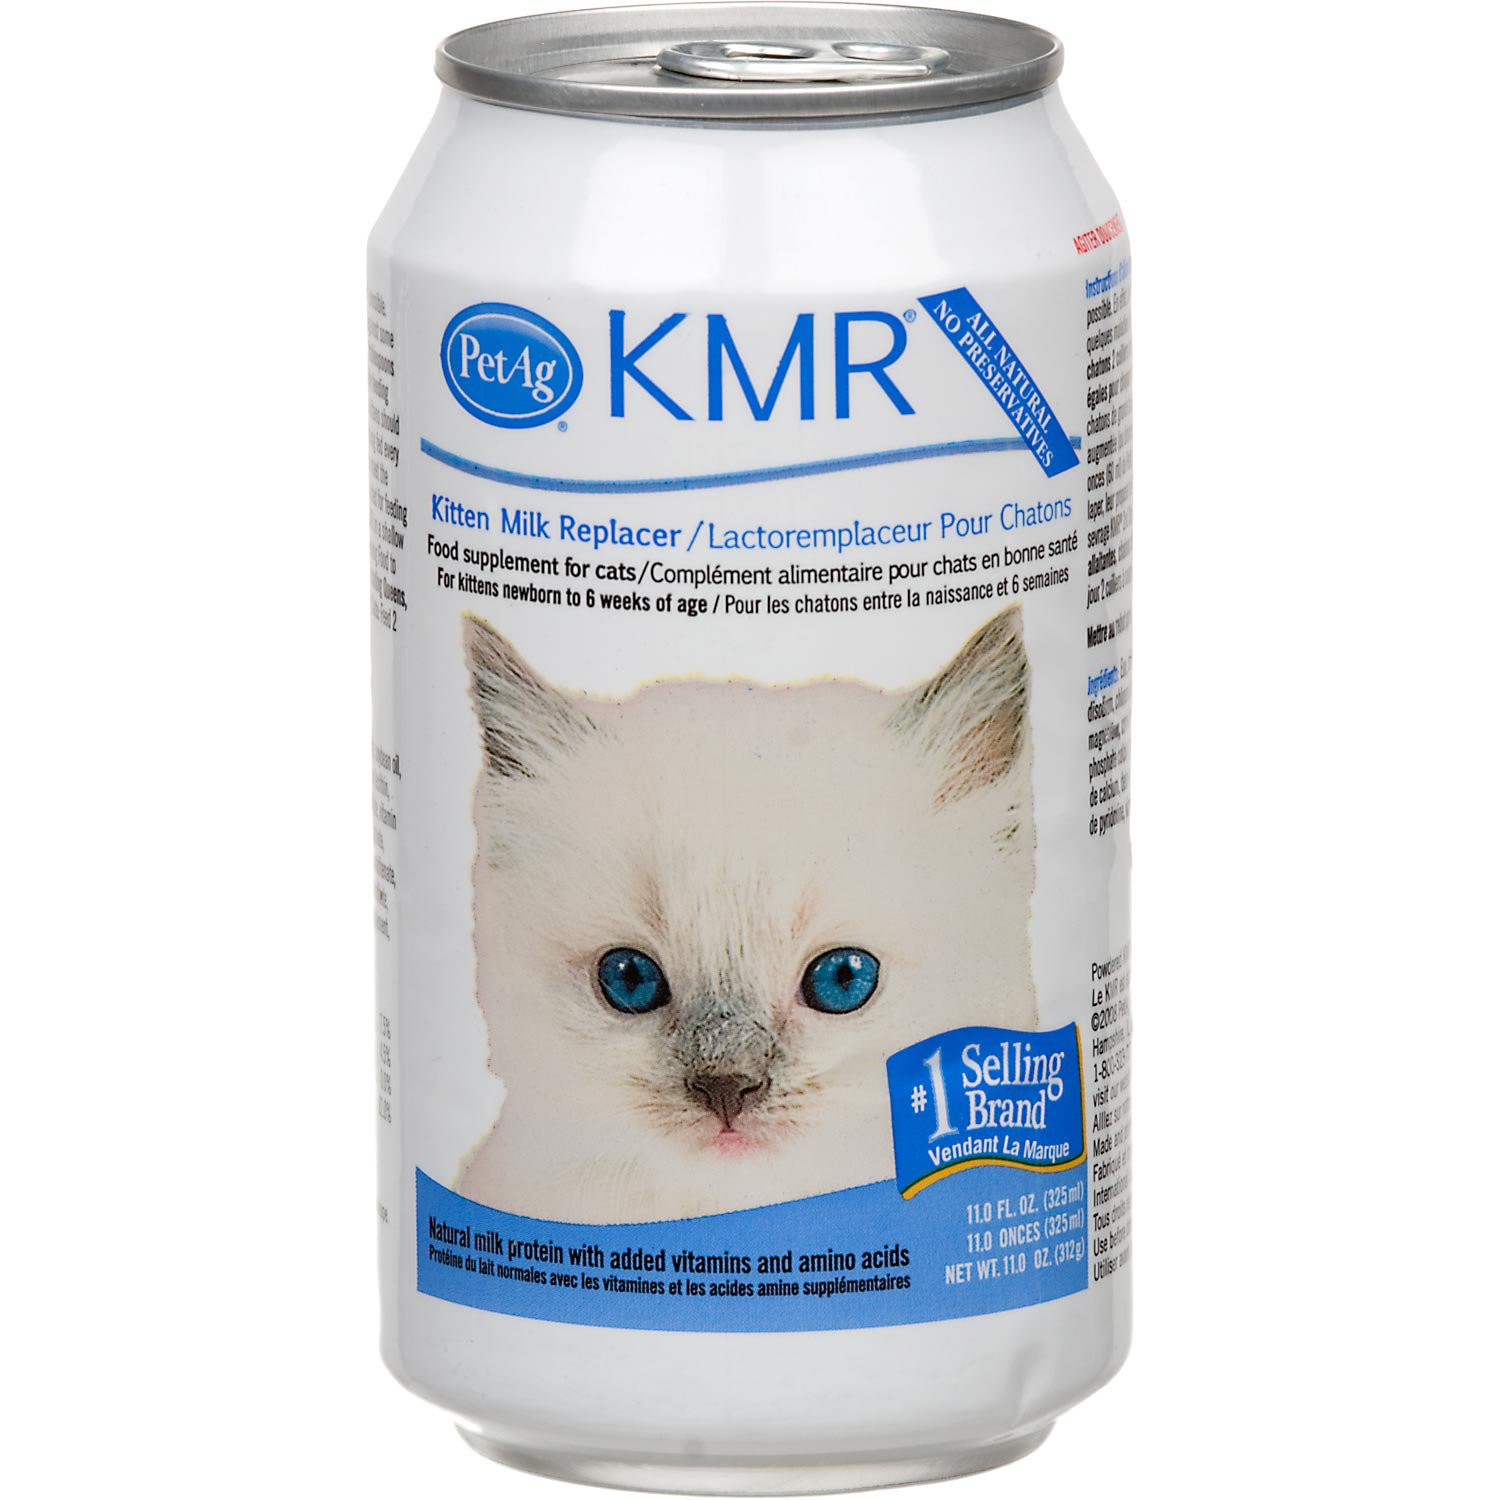 Petag Kmr Kitten Milk Replacer Liquid 11 Oz Kittens Cat Food Pets